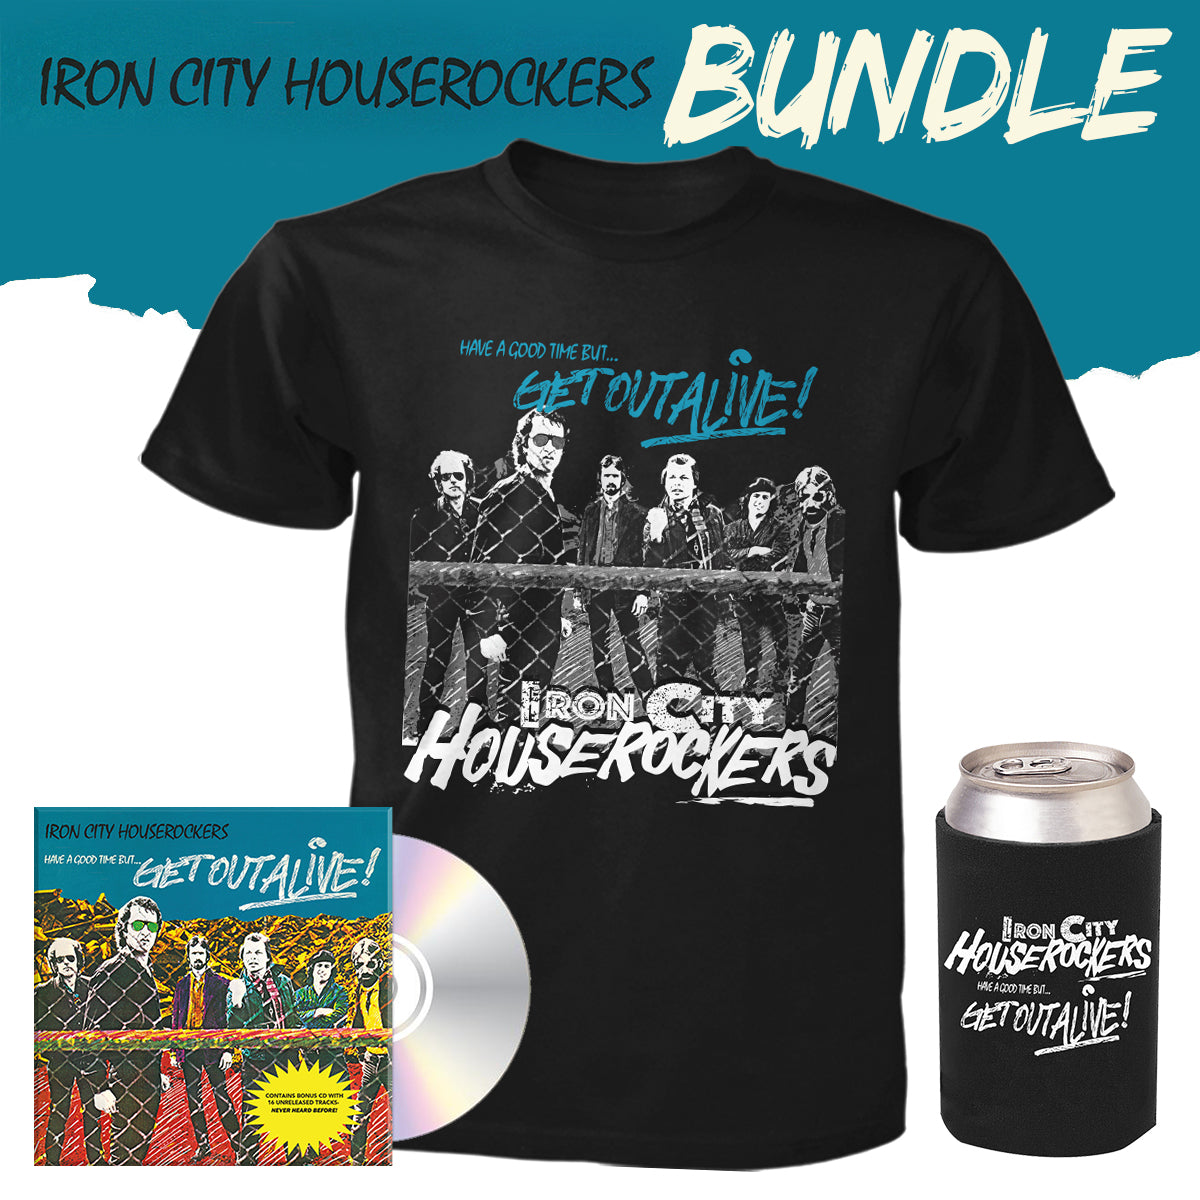 Iron City Houserockers Bundle - CD